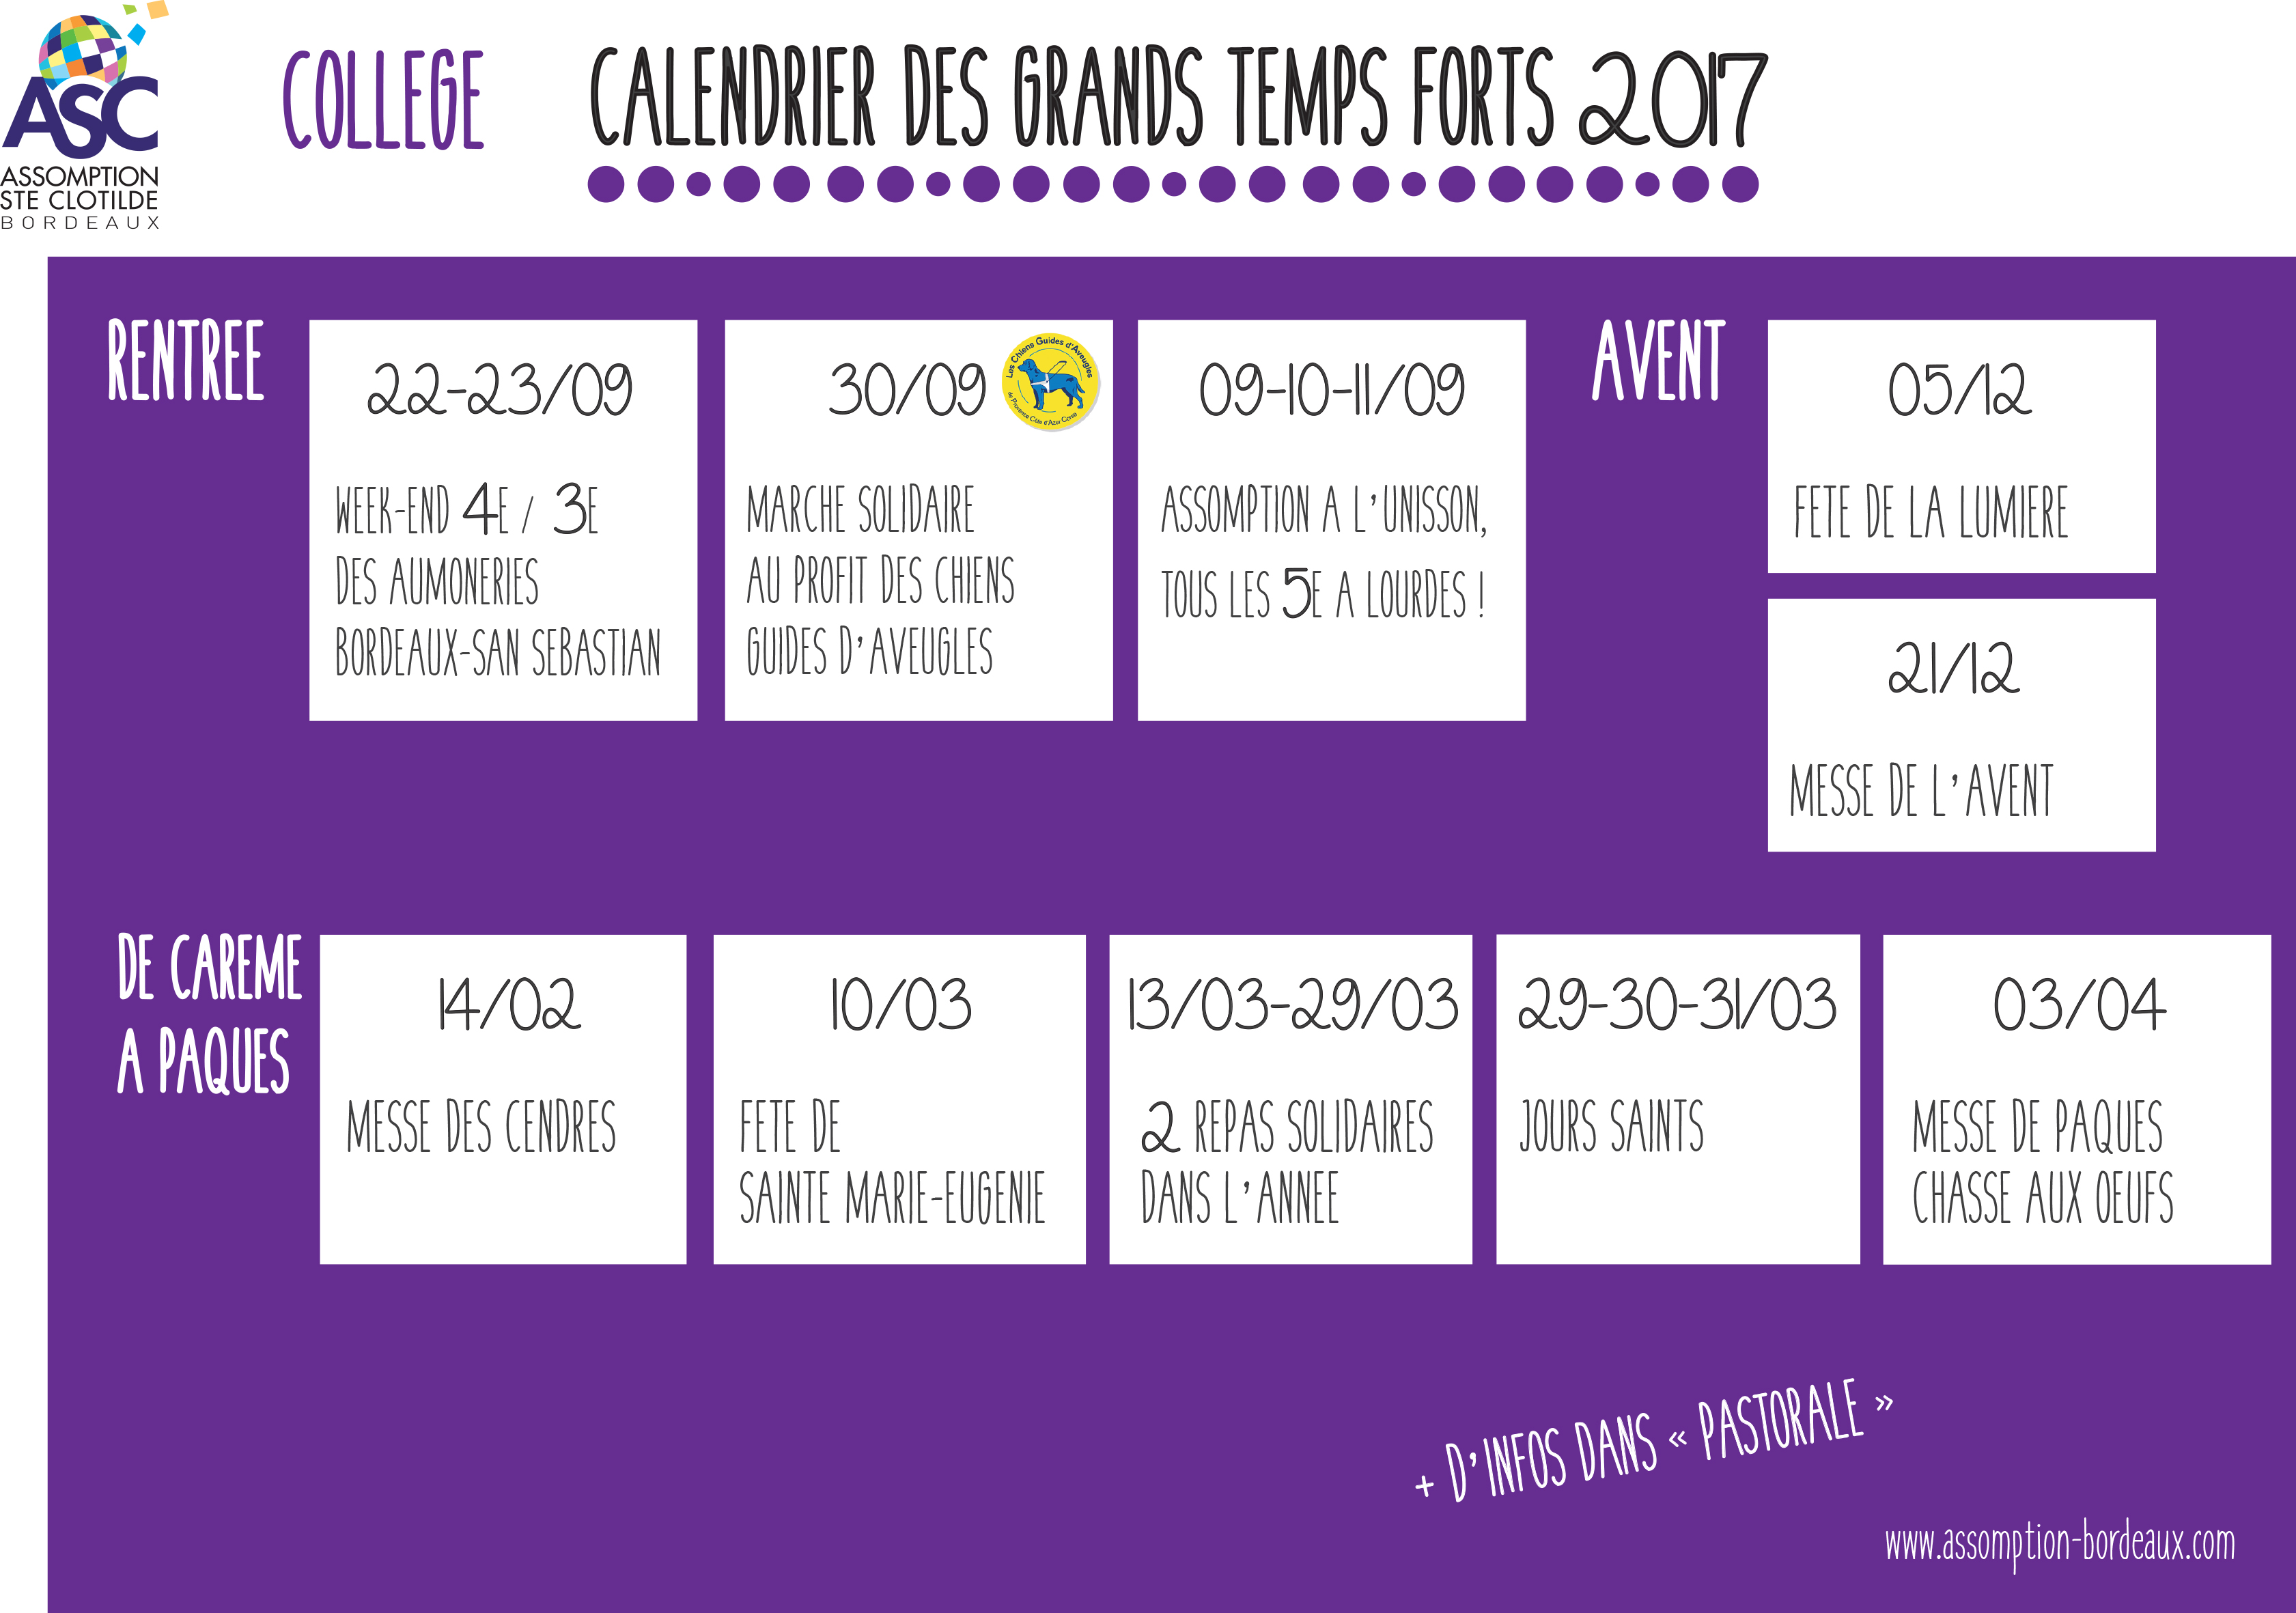 11 CALENDRIER DES GRANDS TEMPS FORTS 2017 COLLEGE